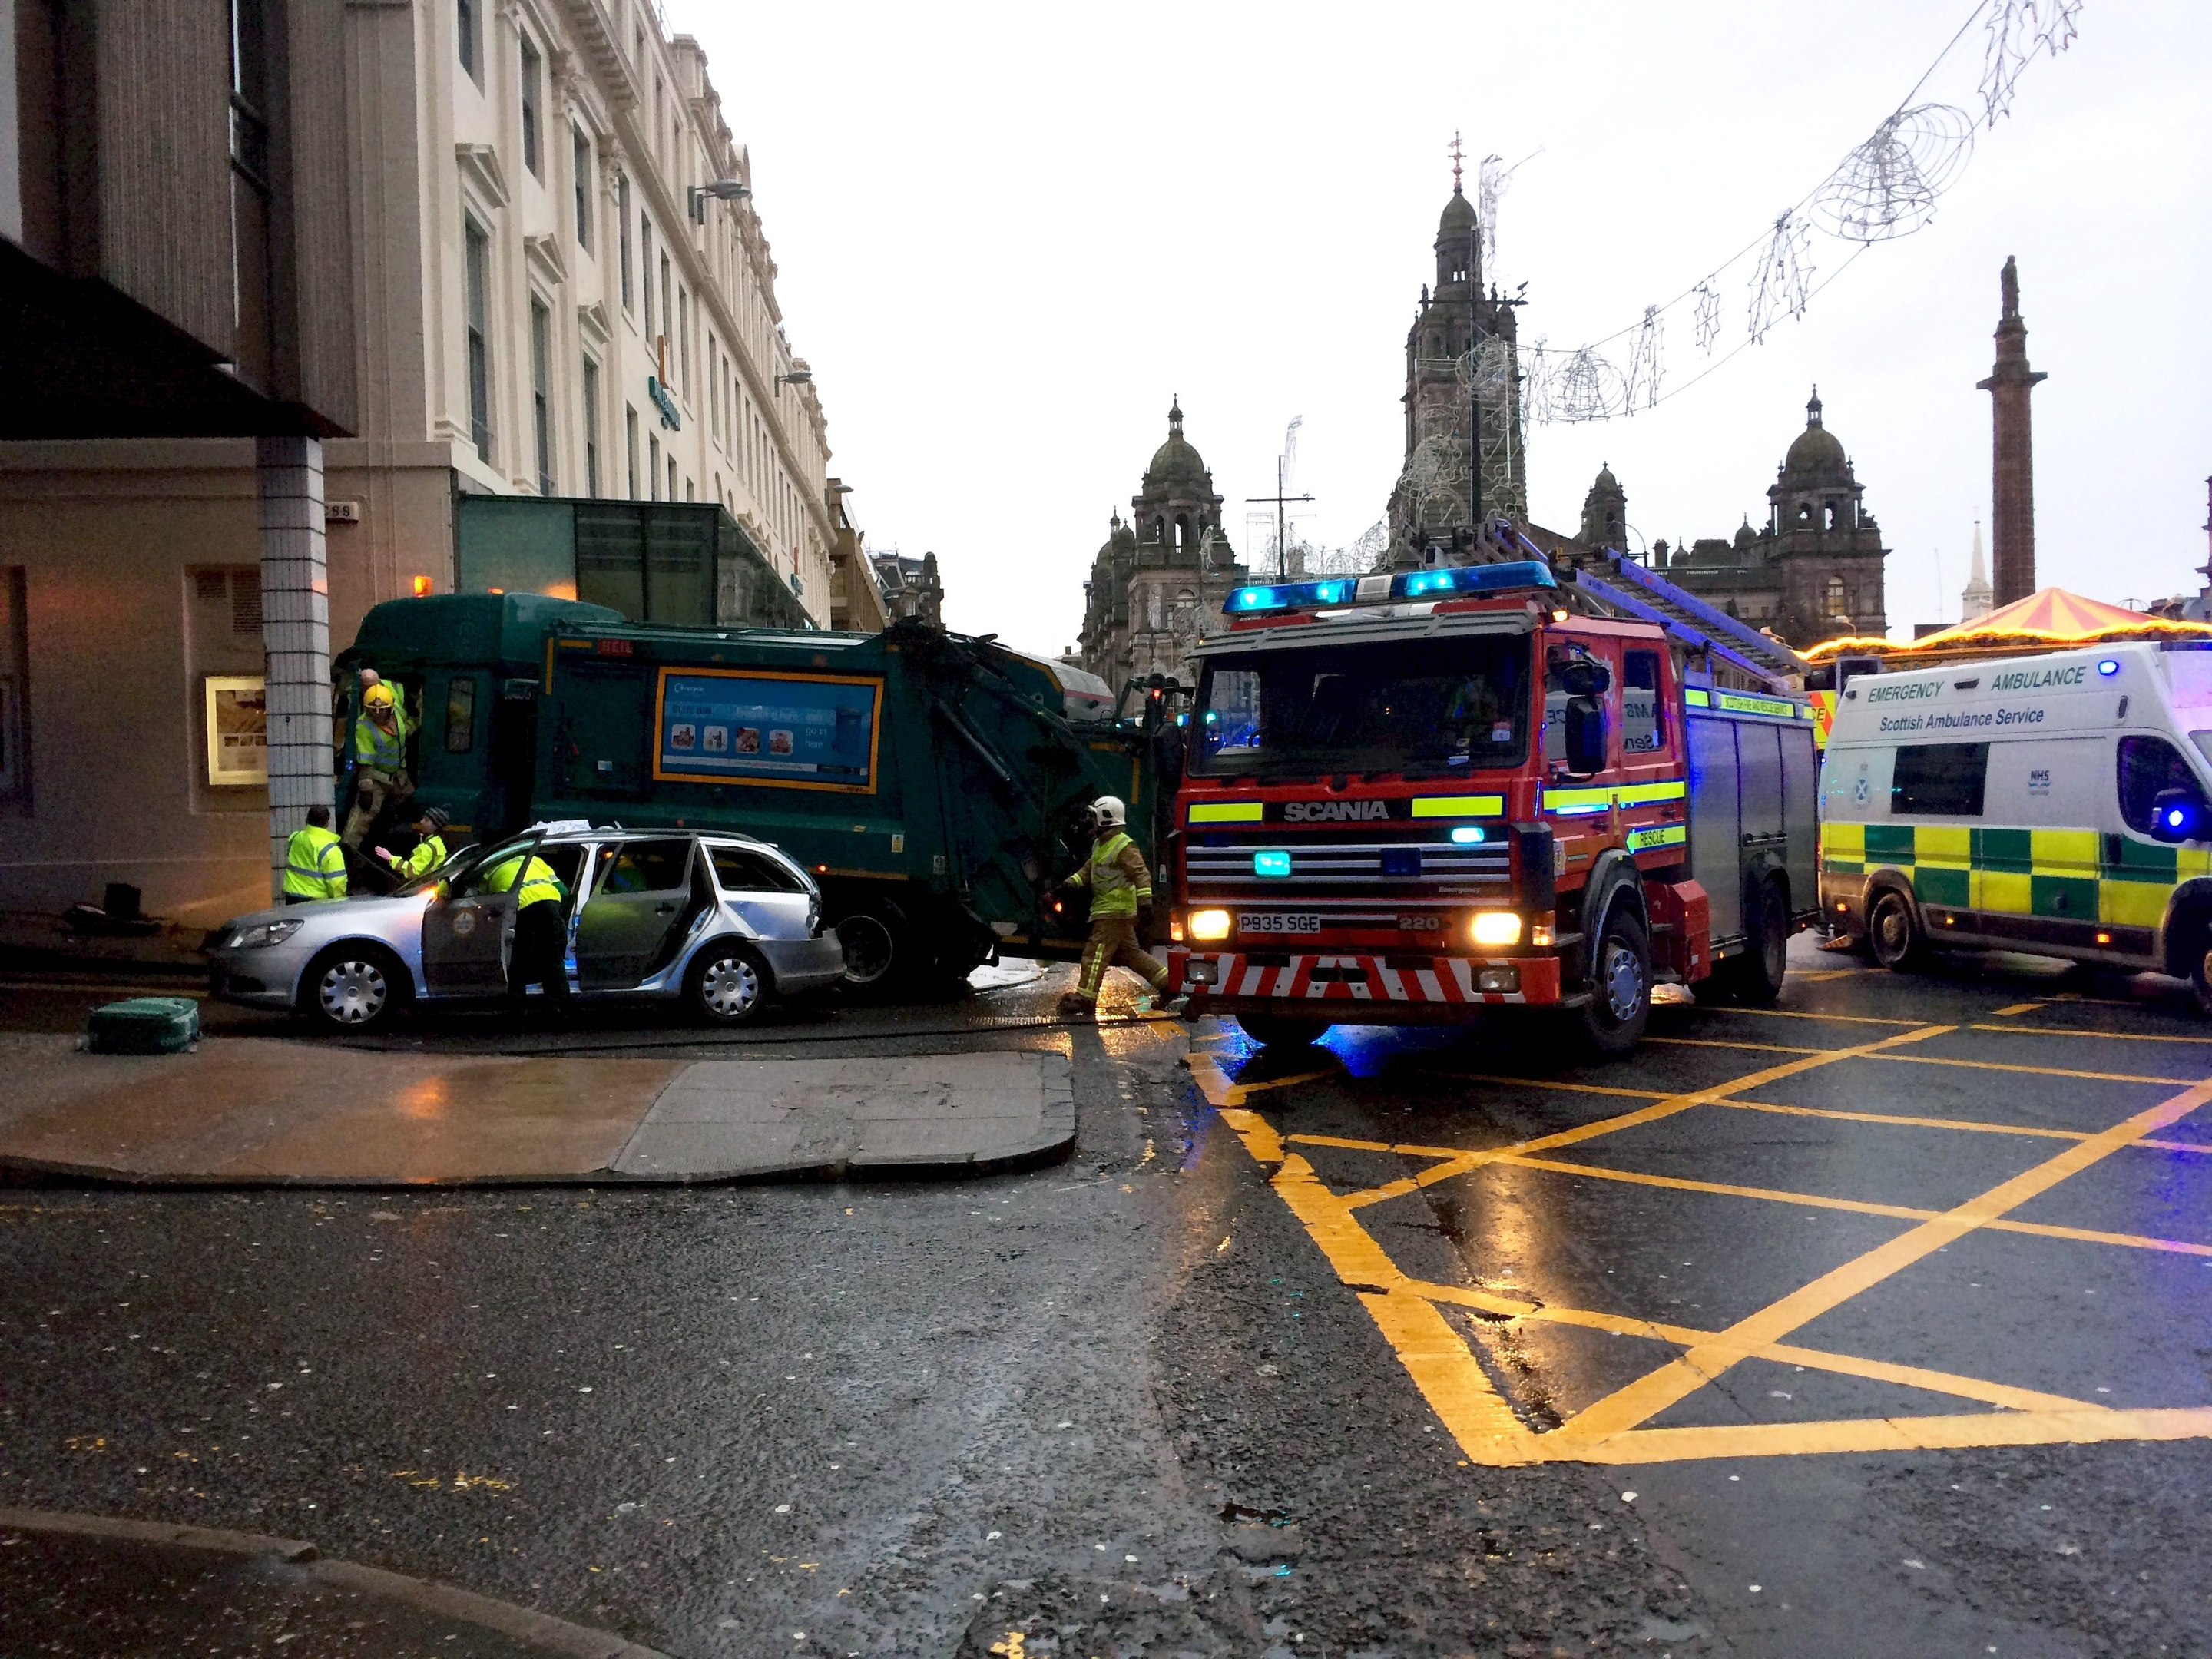 Emergency services at the scene on Queen Street in Glasgow where a bin lorry lost control and hit pedestrians, some are seriously injured with possible fatalities. December 22nd 2014